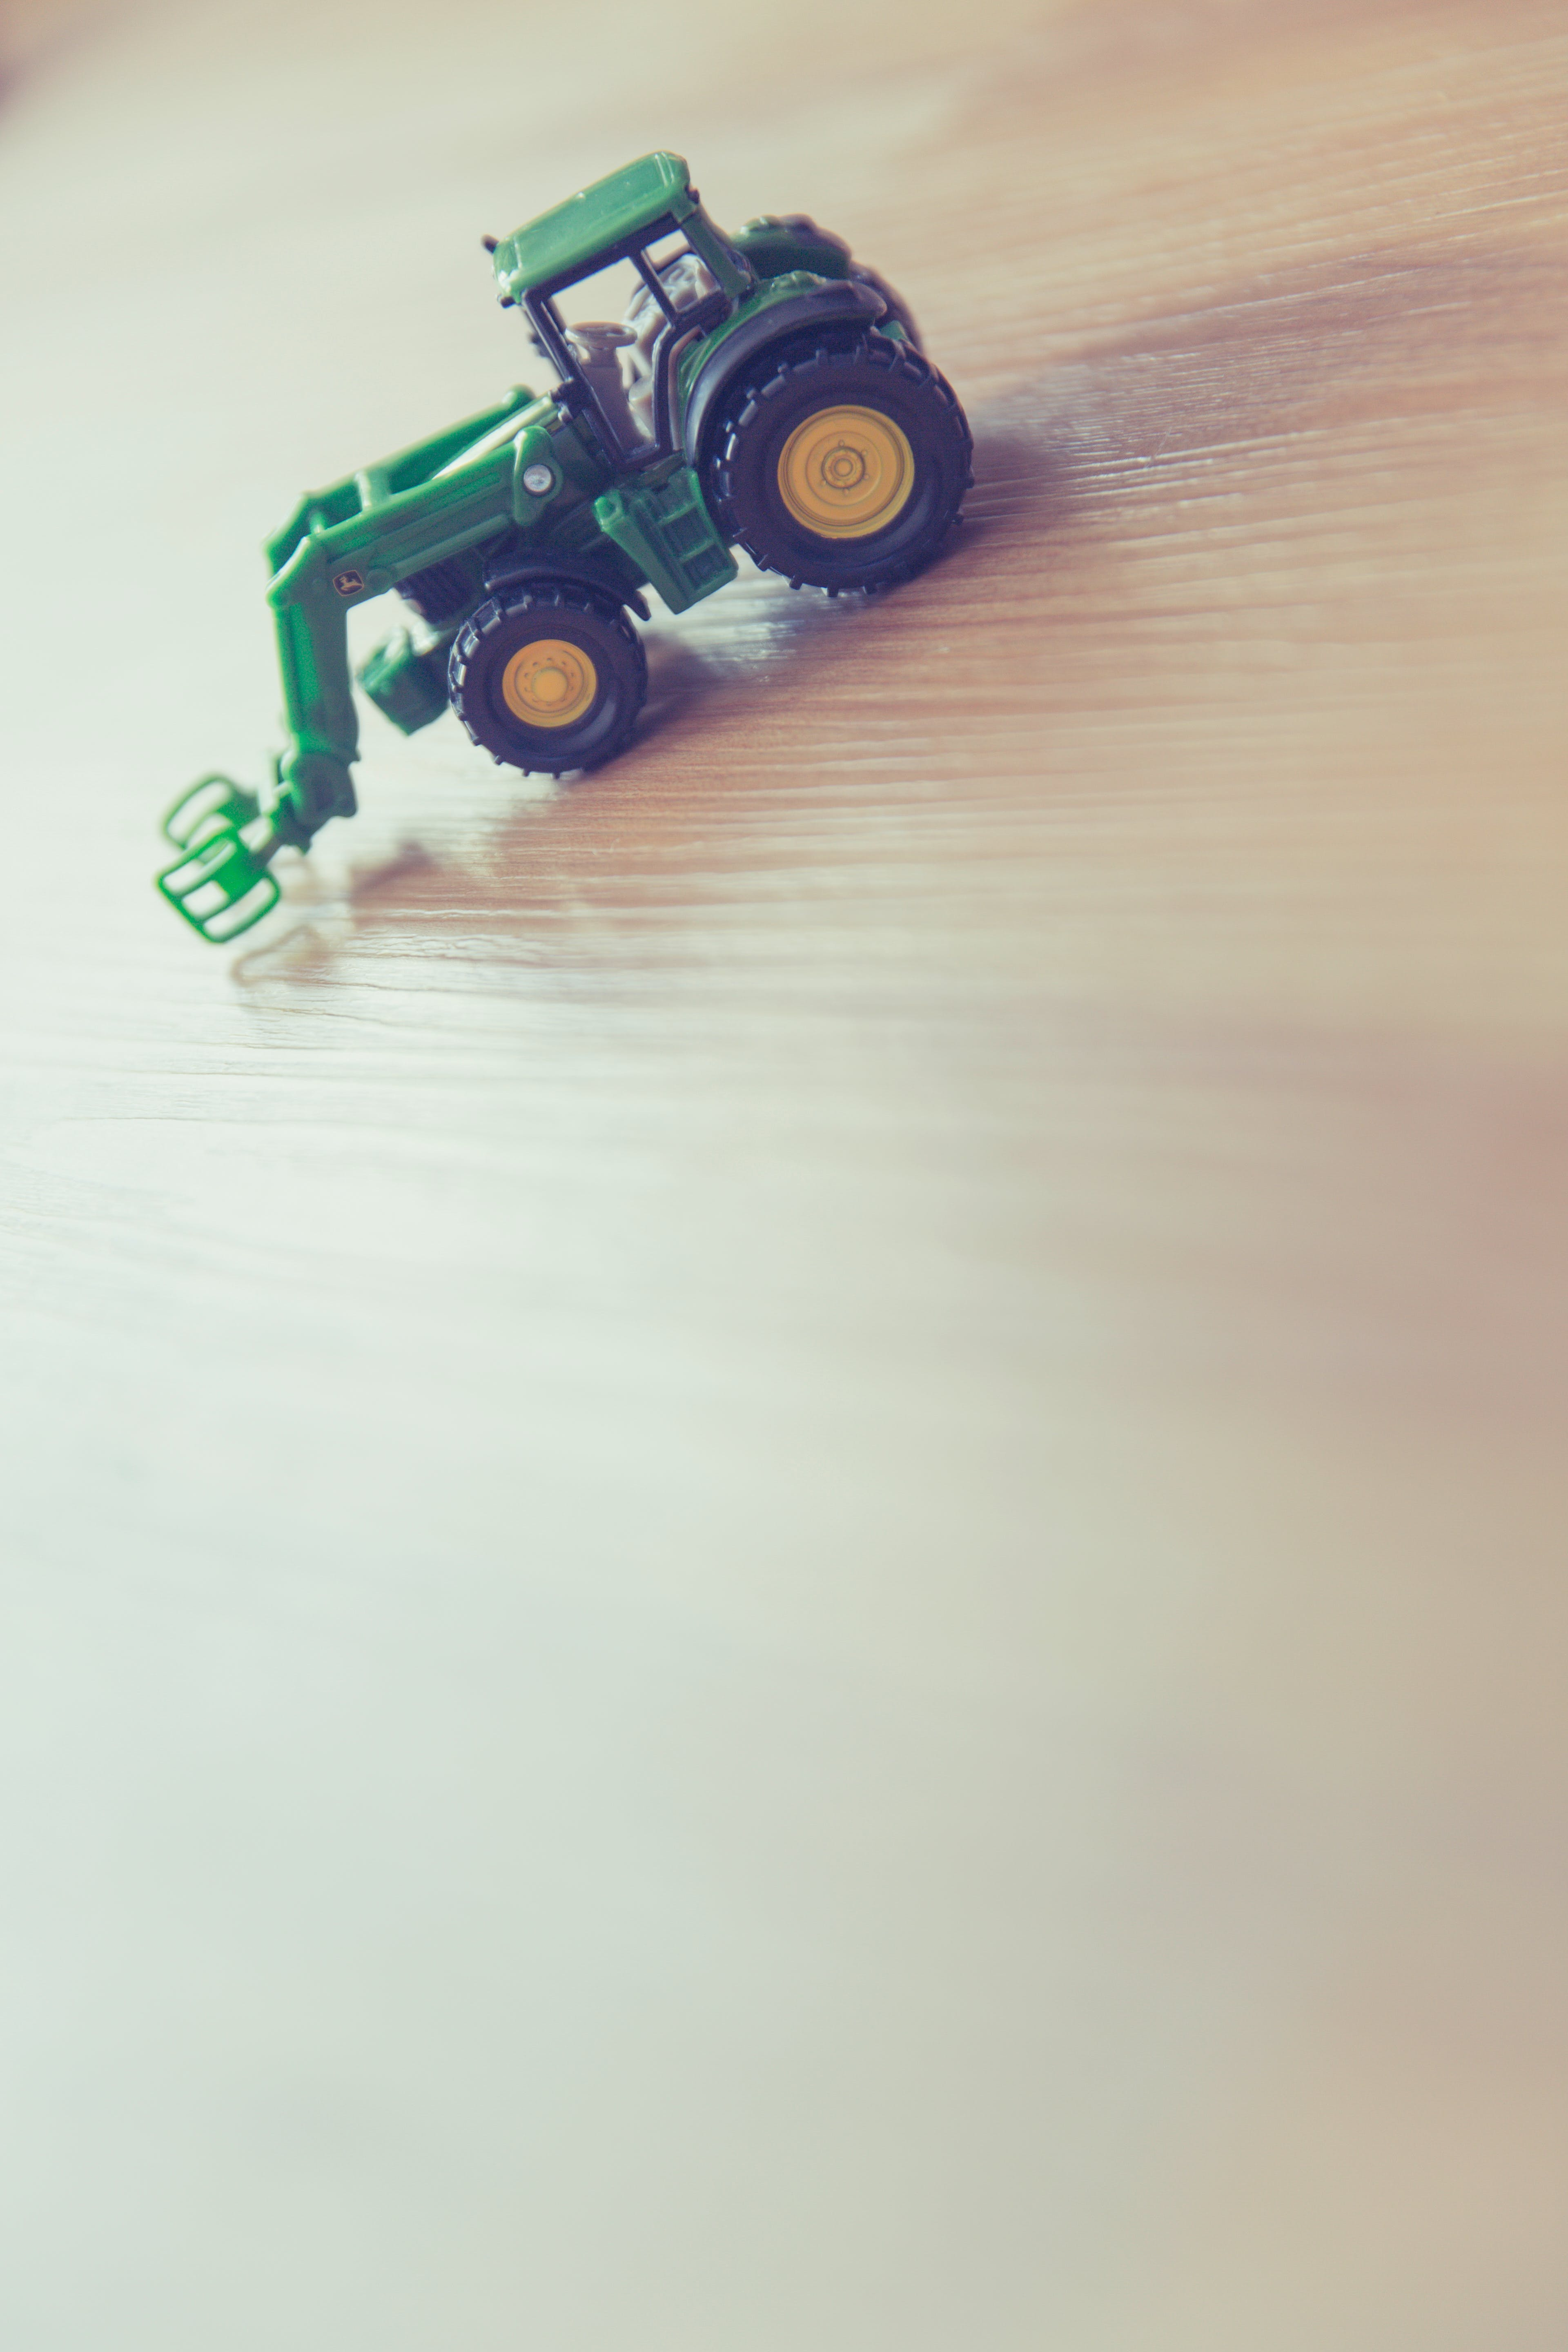 Free stock photo of agricultural machine, agriculture, child, childhood